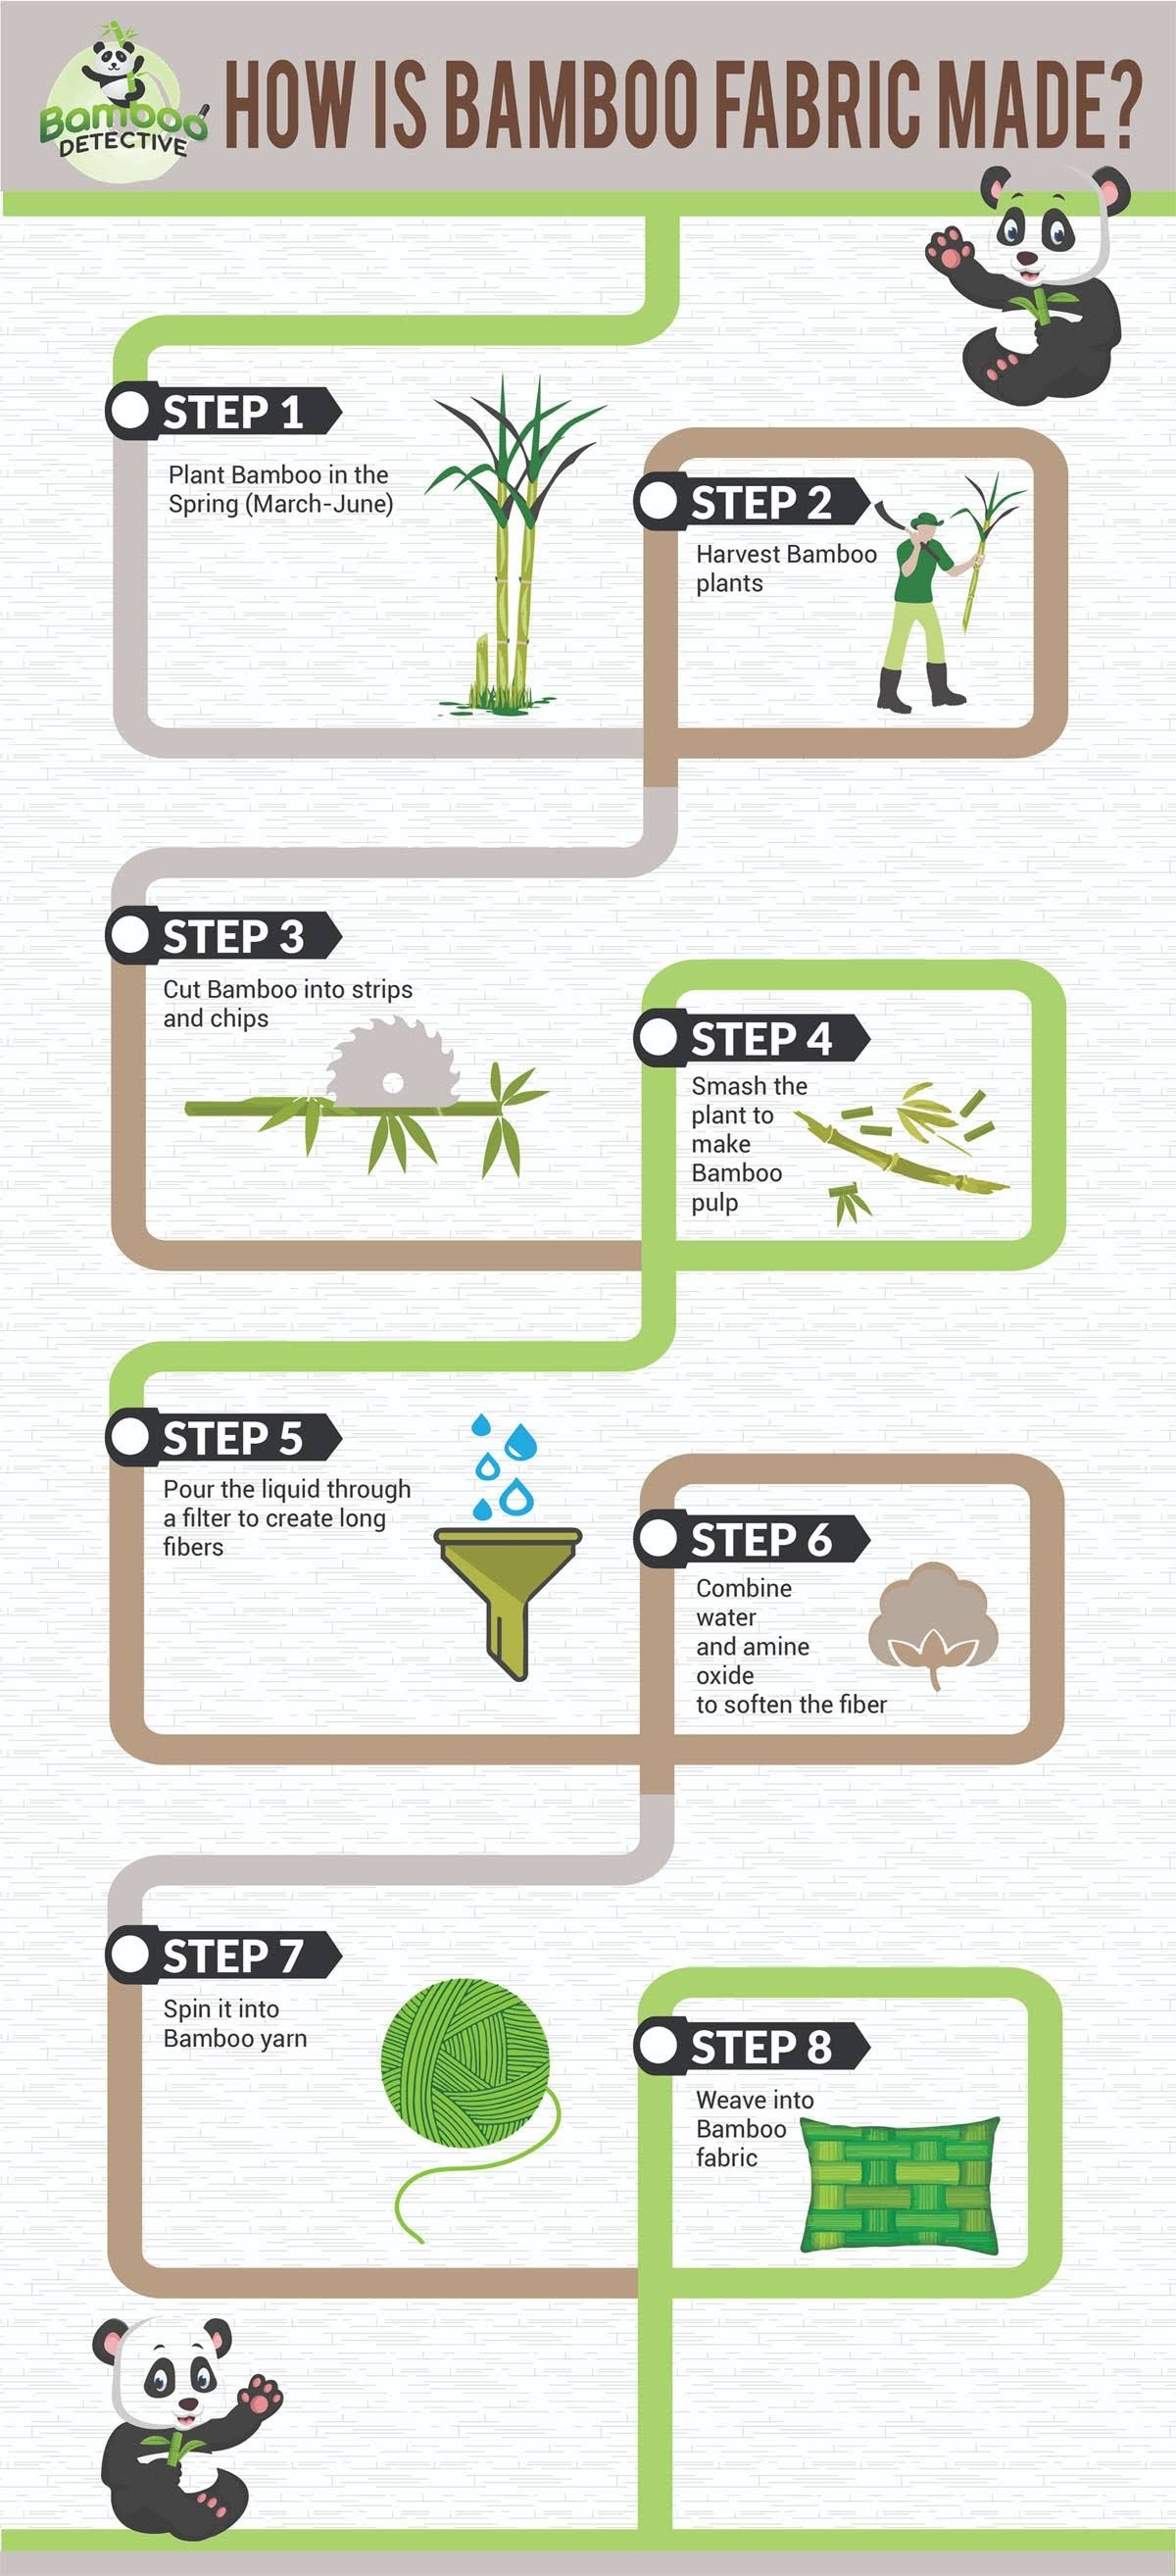 How is Bamboo Fabric Made? #infographic